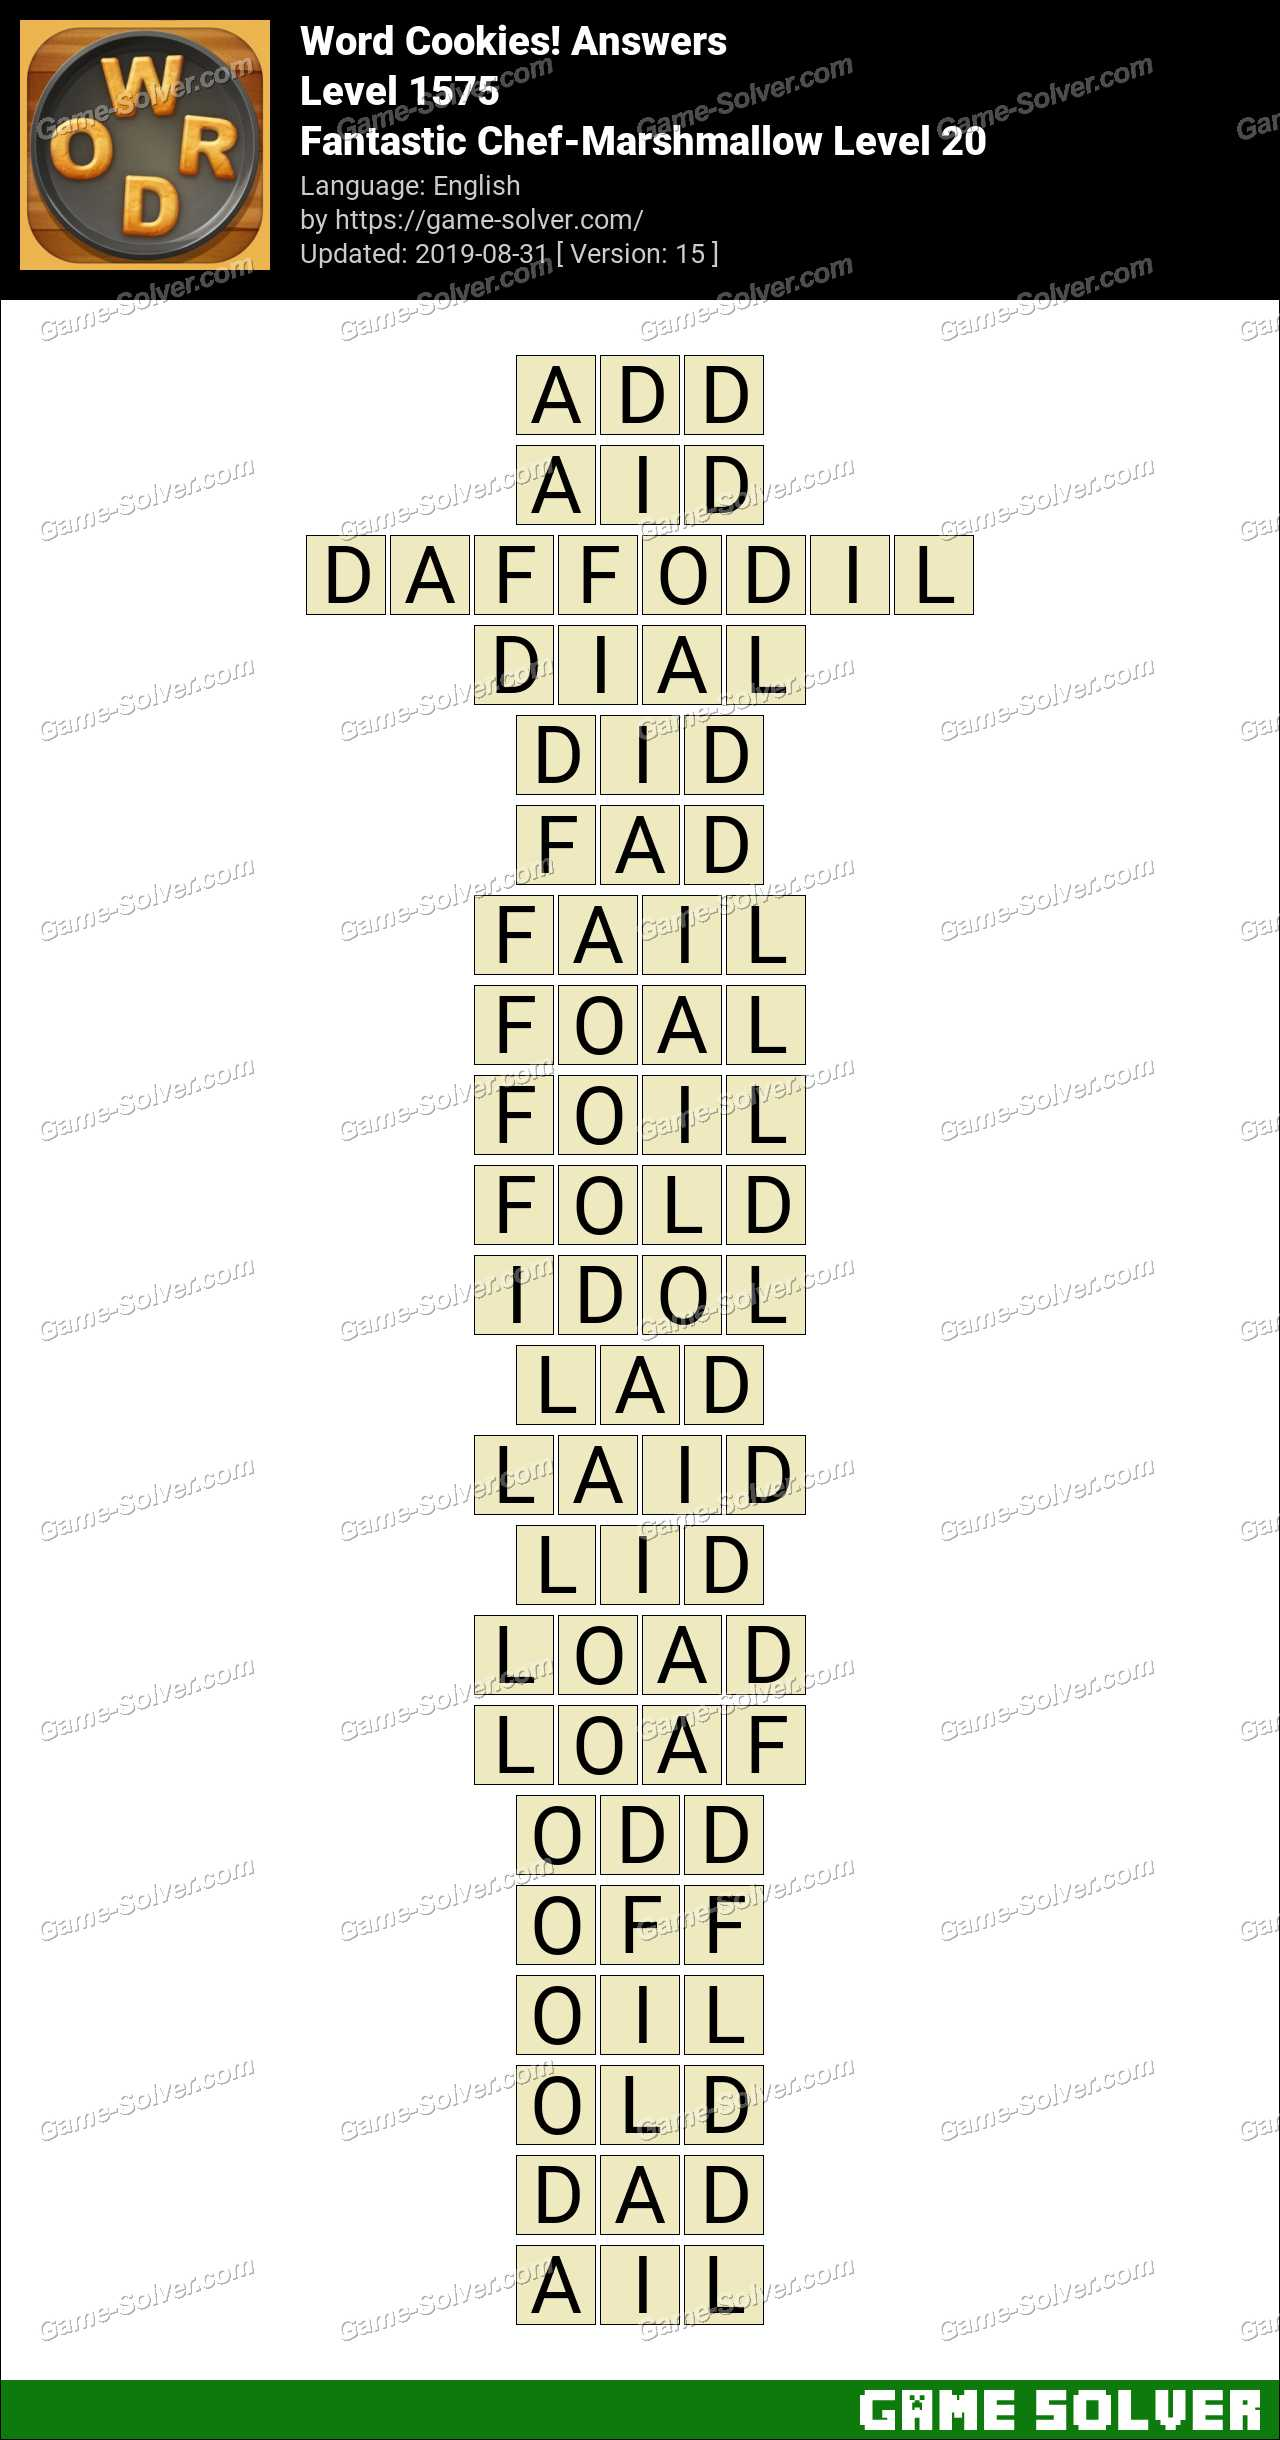 Word Cookies Fantastic Chef-Marshmallow Level 20 Answers